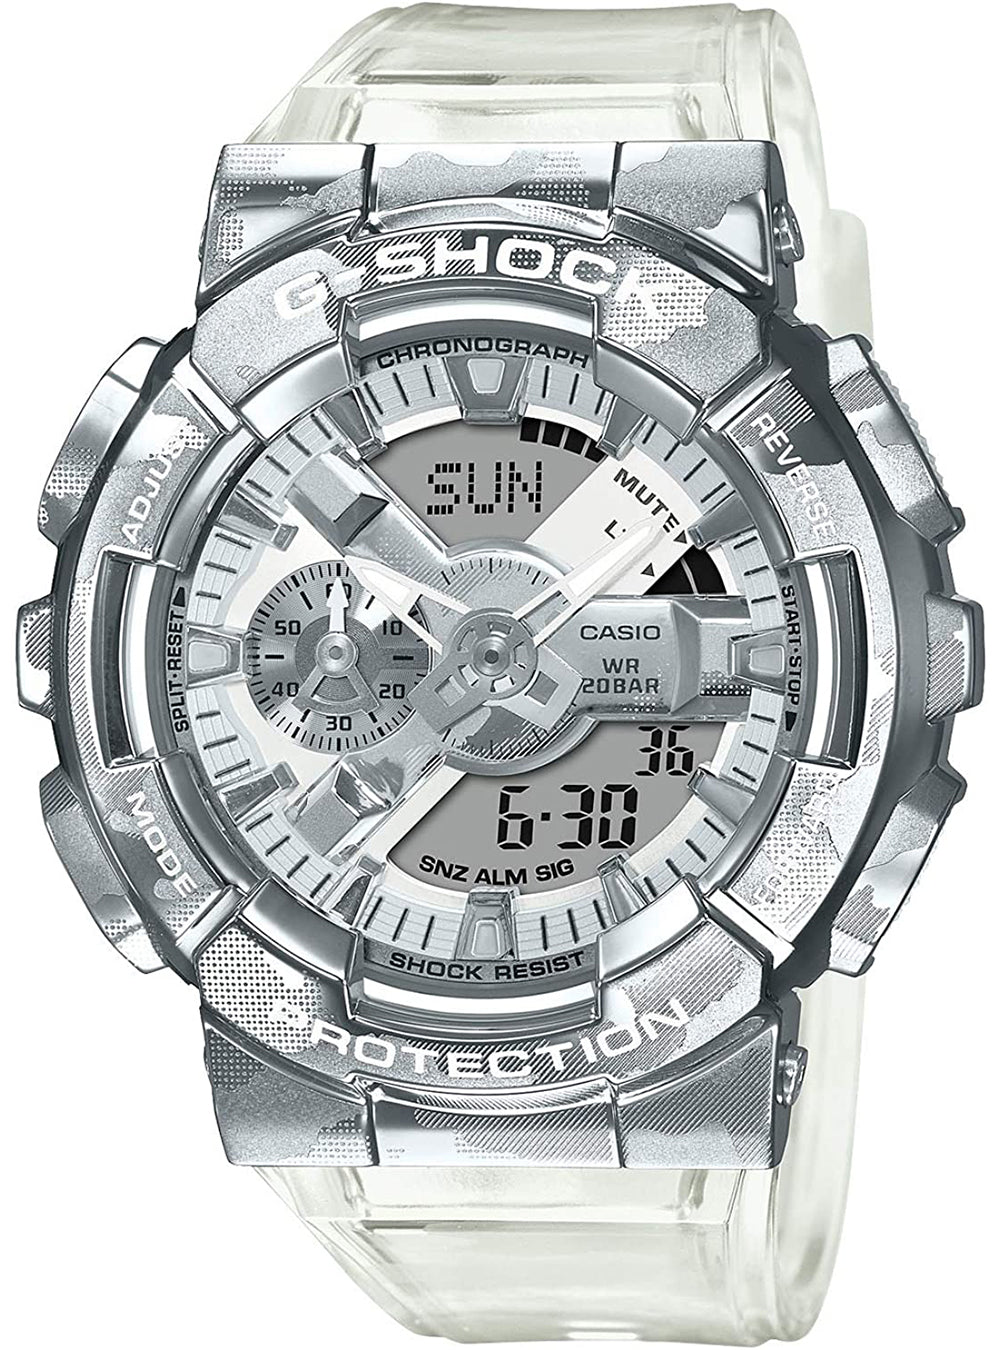 CASIO G-SHOCK Skeleton Camouflage Series GM-110SCM-1AJF JDM